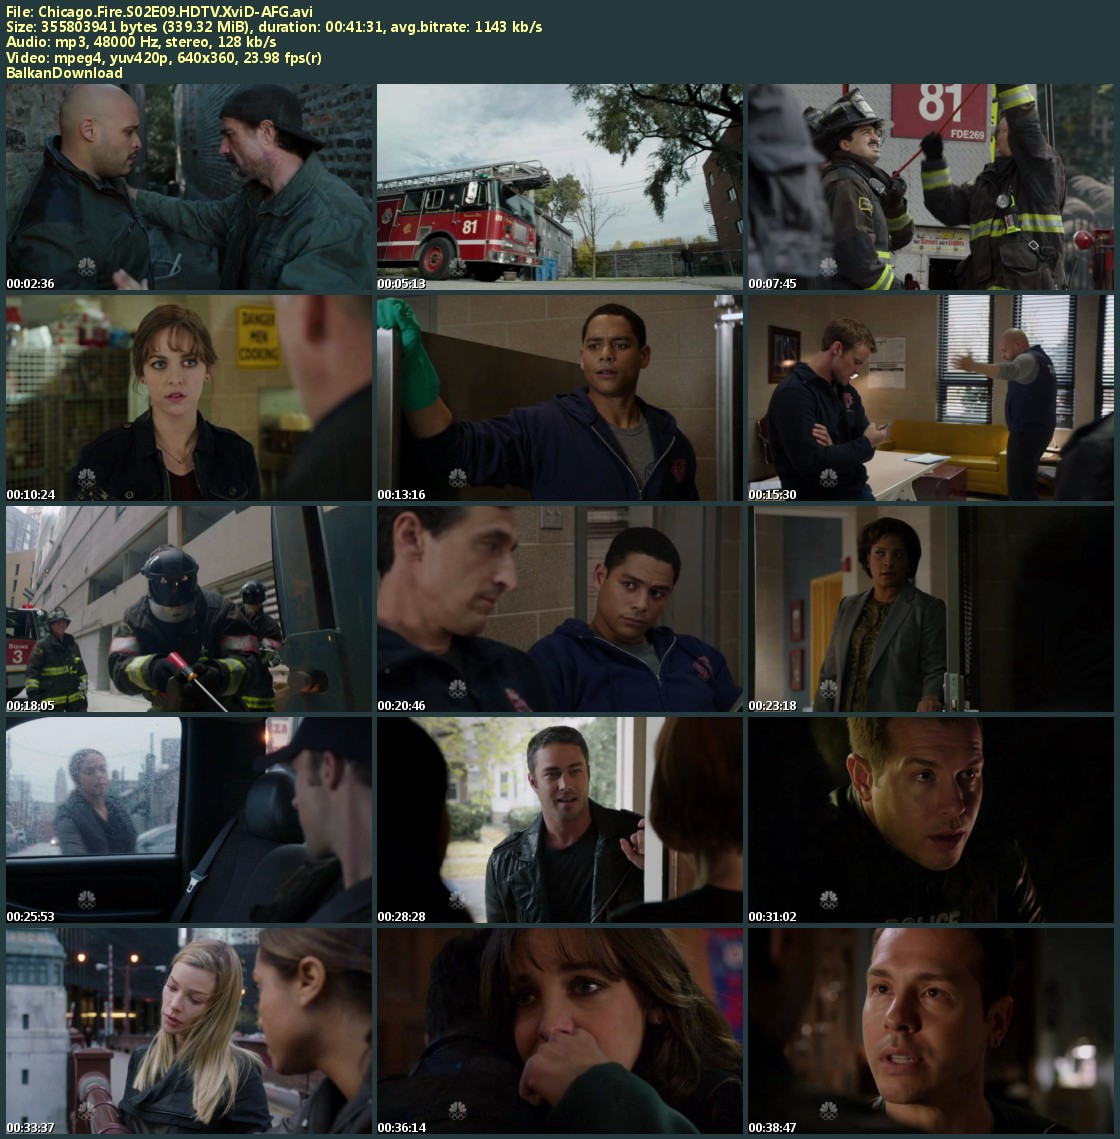 chicago.fire.s02e09.hl9kc5.jpg